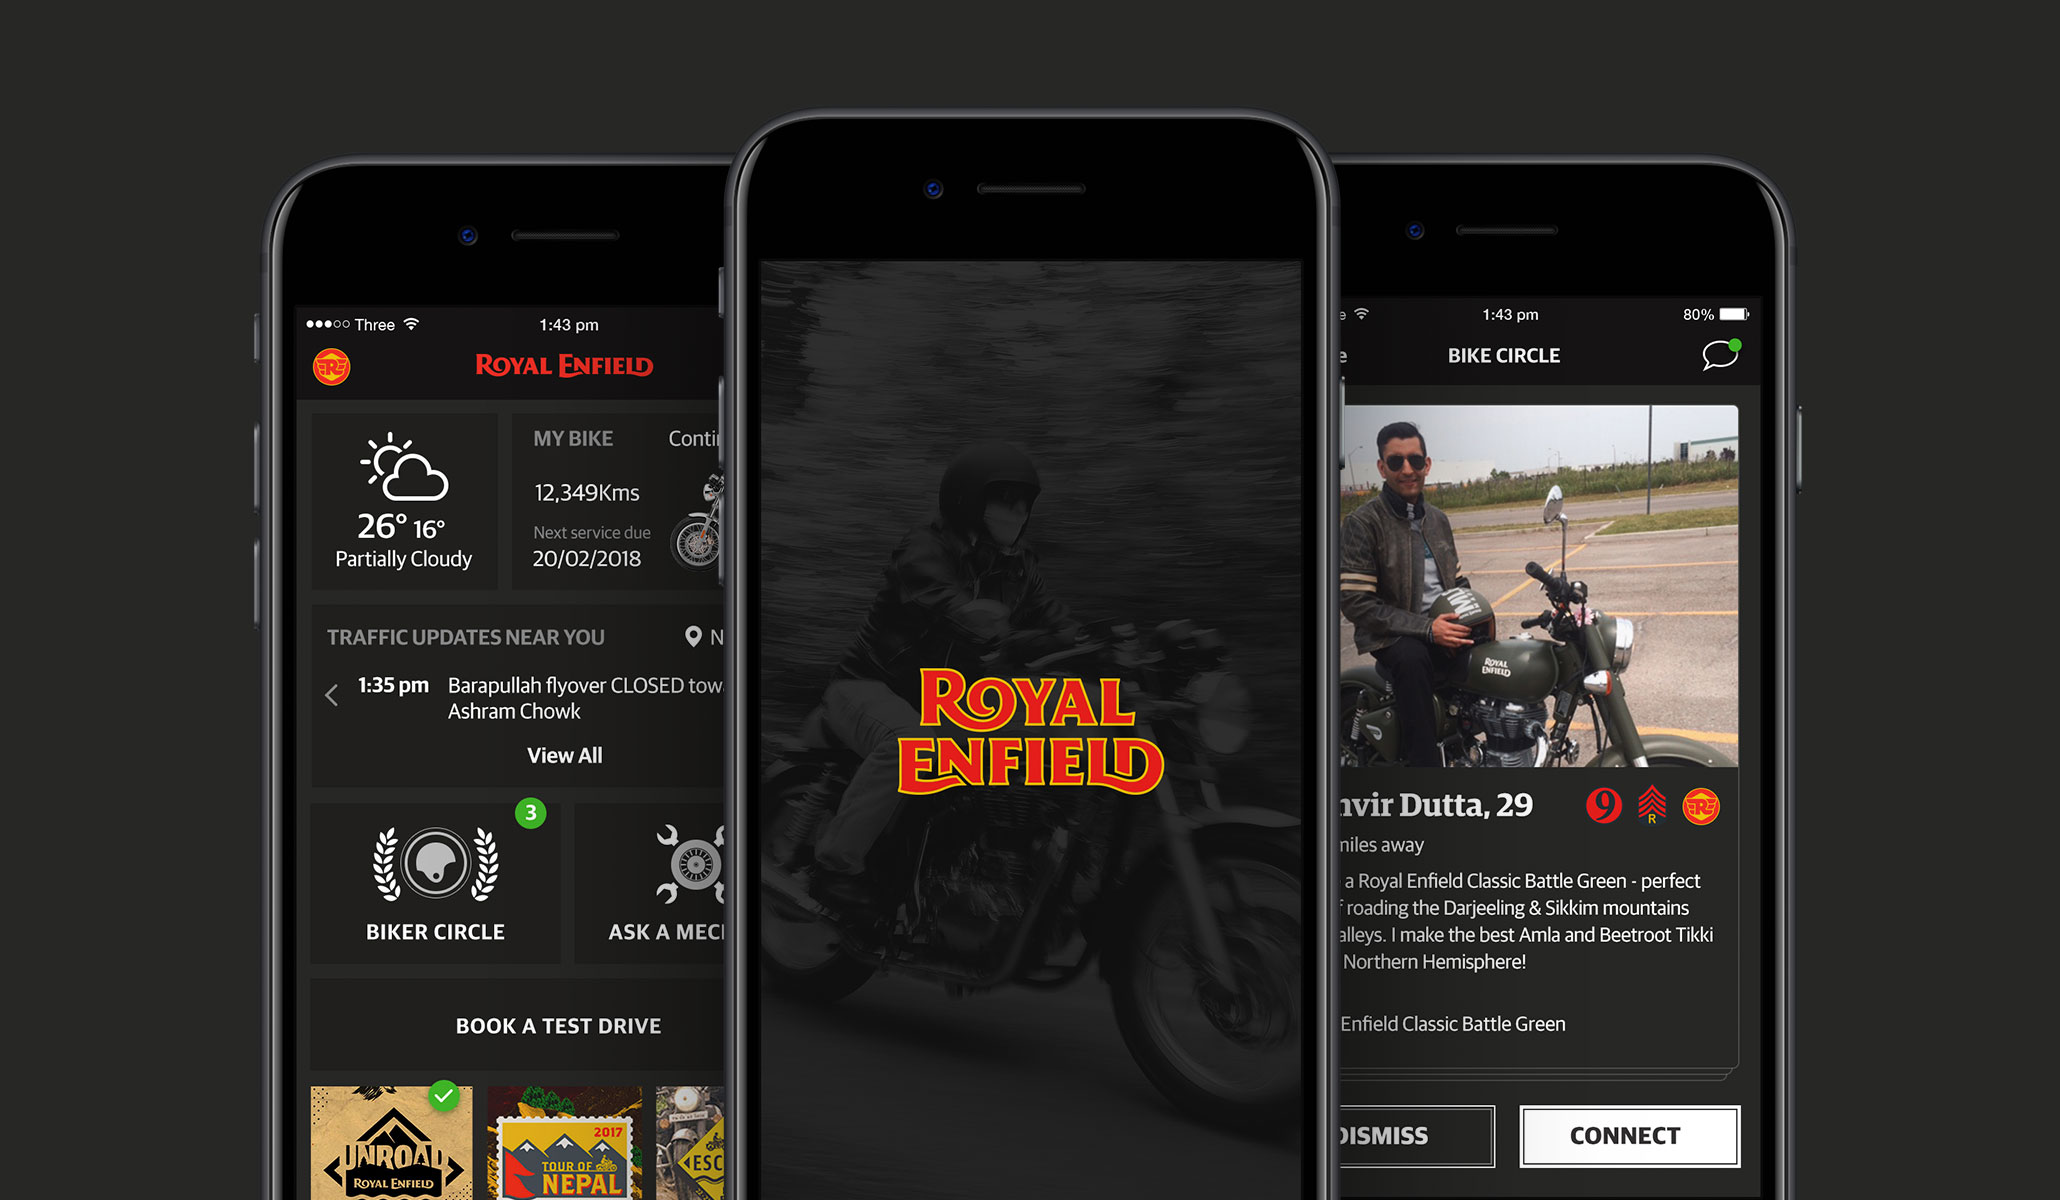 Royal Enfield App